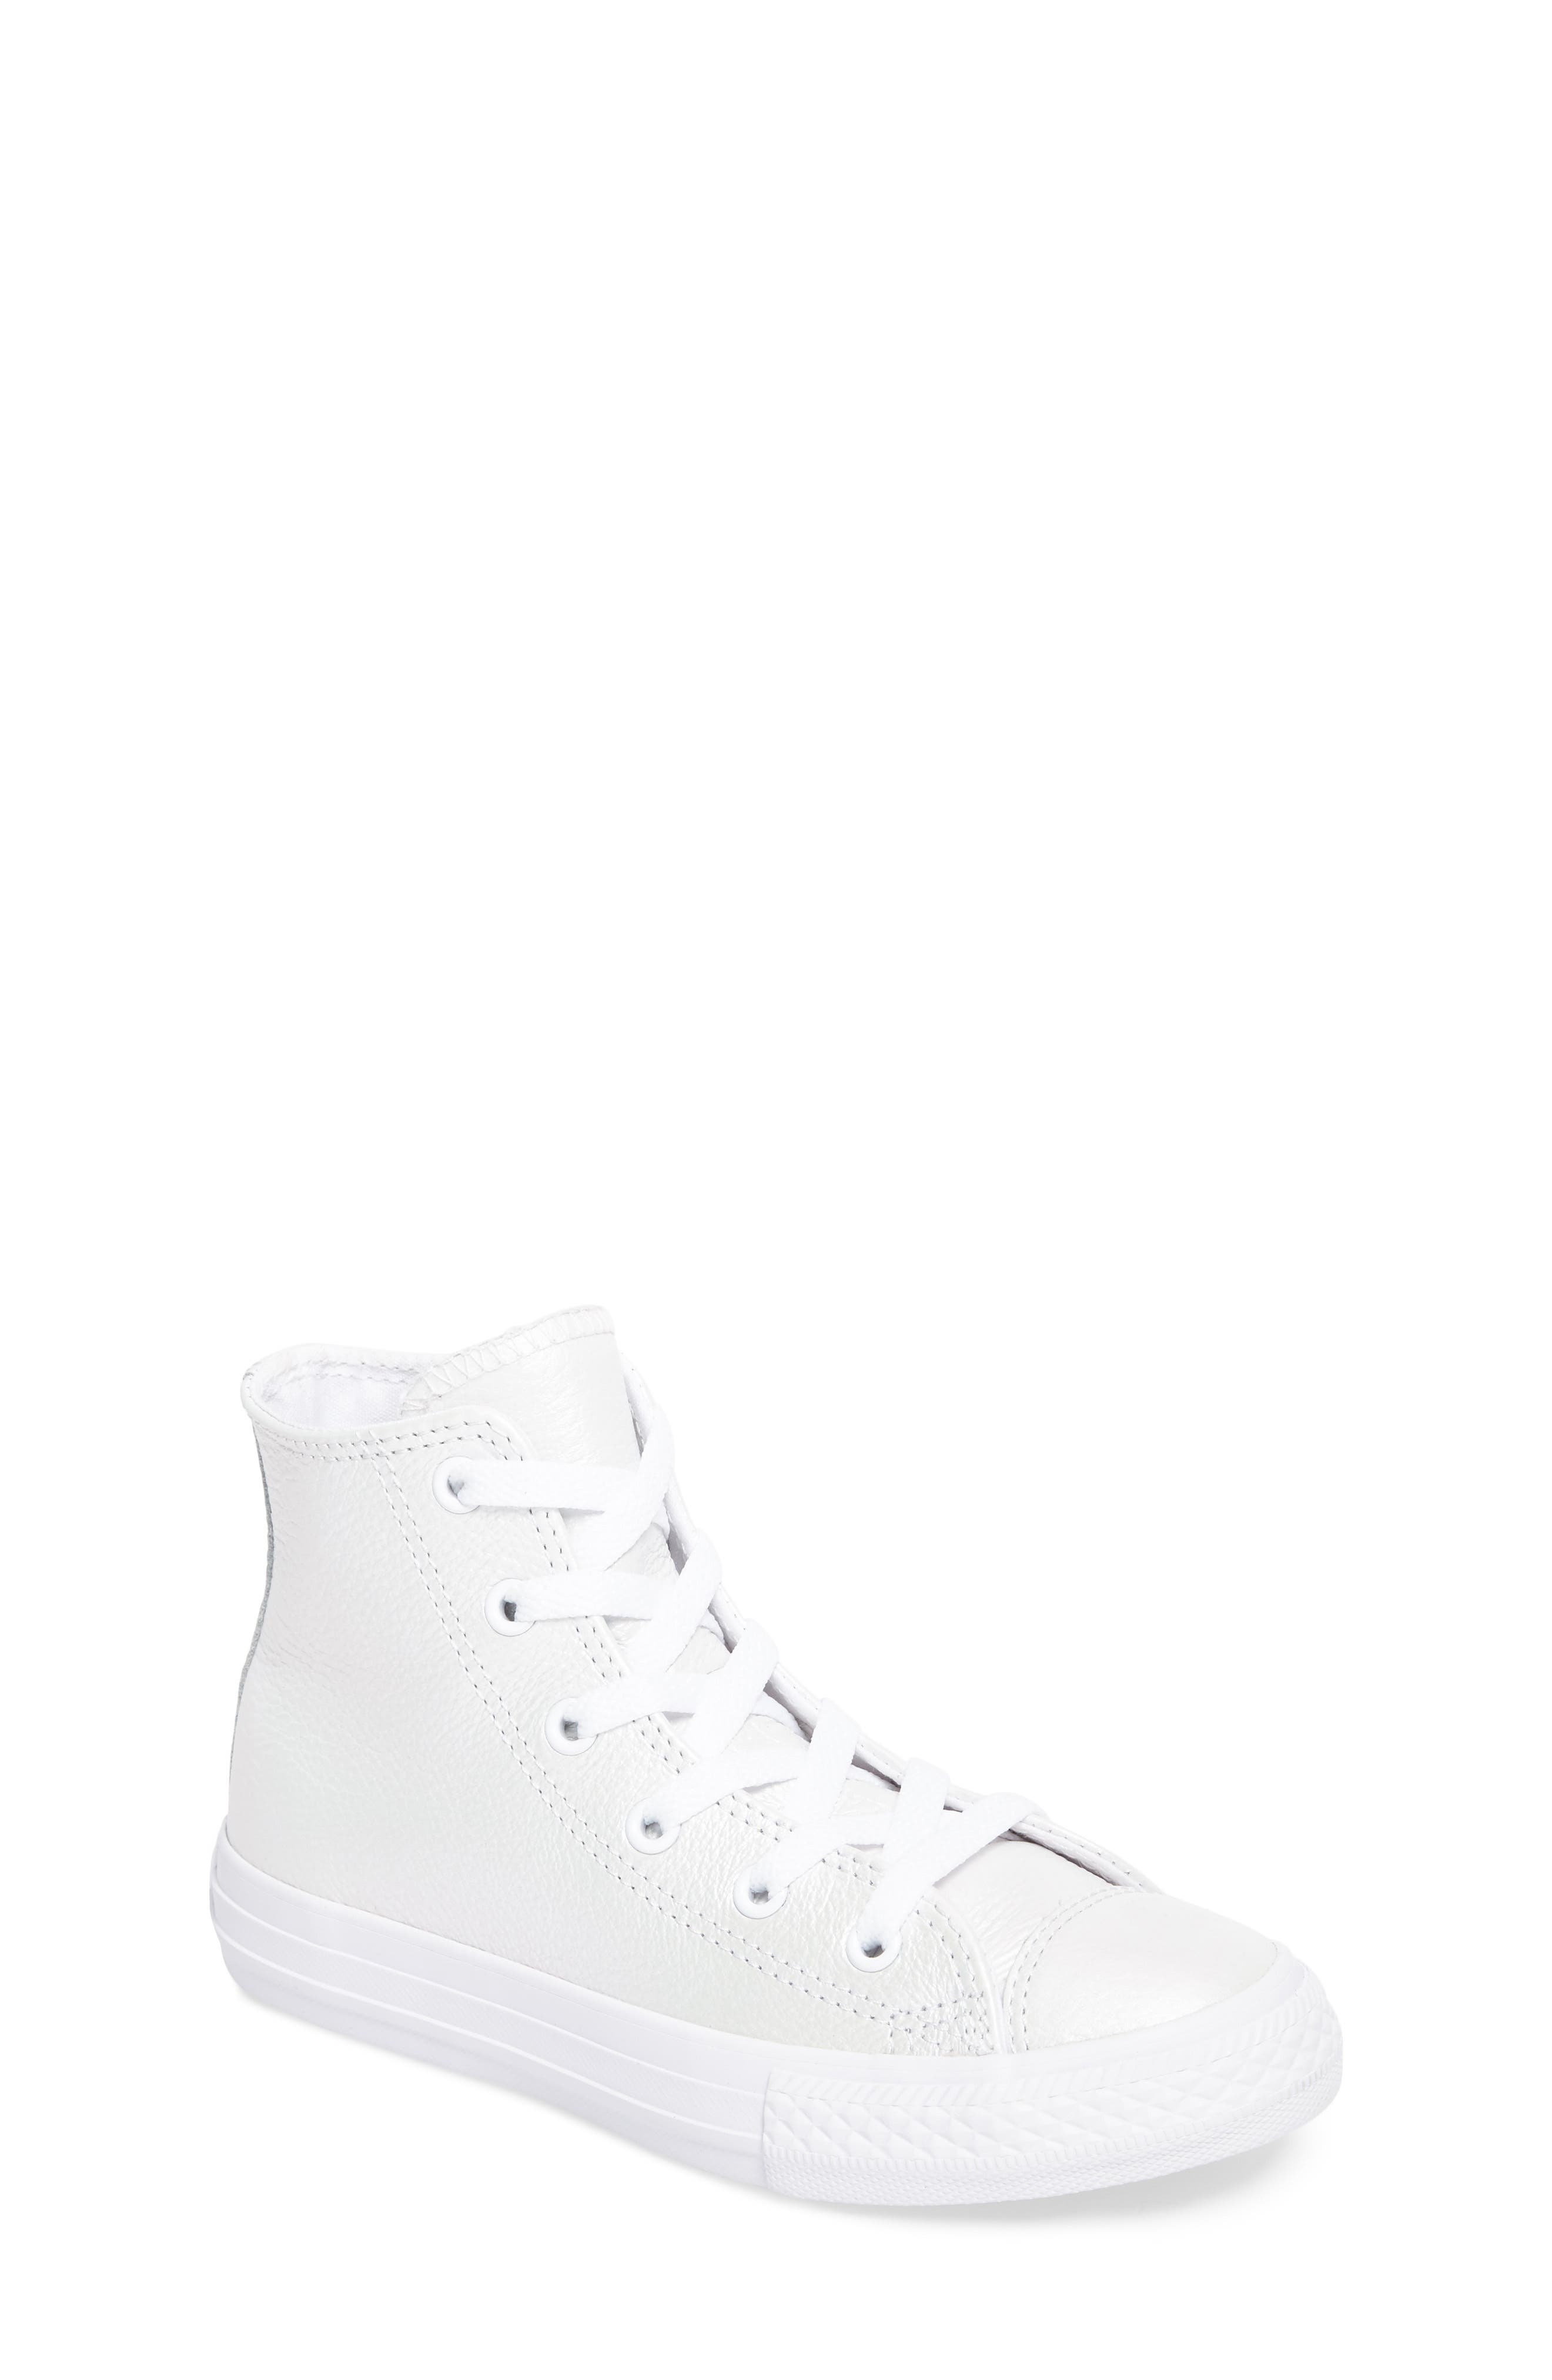 Chuck Taylor<sup>®</sup> All Star<sup>®</sup> Iridescent Leather High Top Sneaker,                             Main thumbnail 1, color,